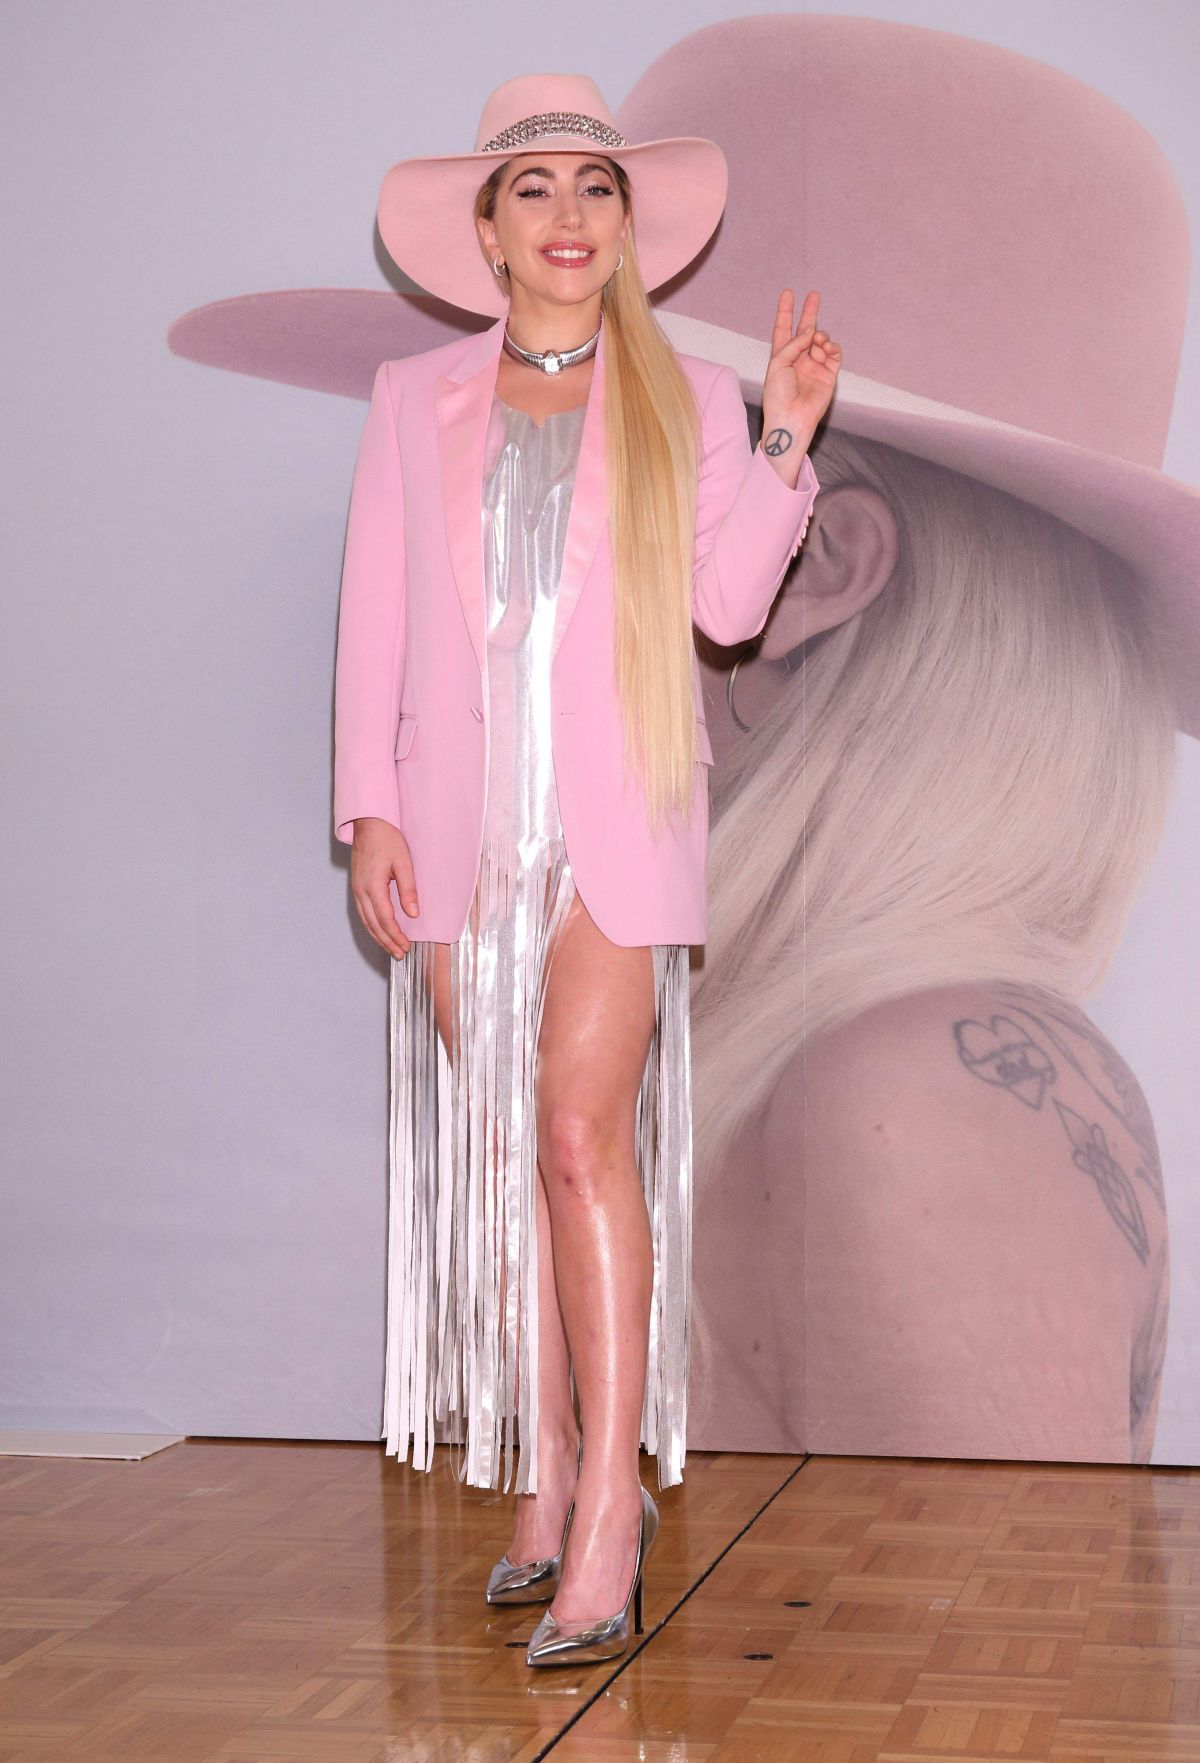 LADY GAGA At Joanne Album Press Conference In Tokyo 11